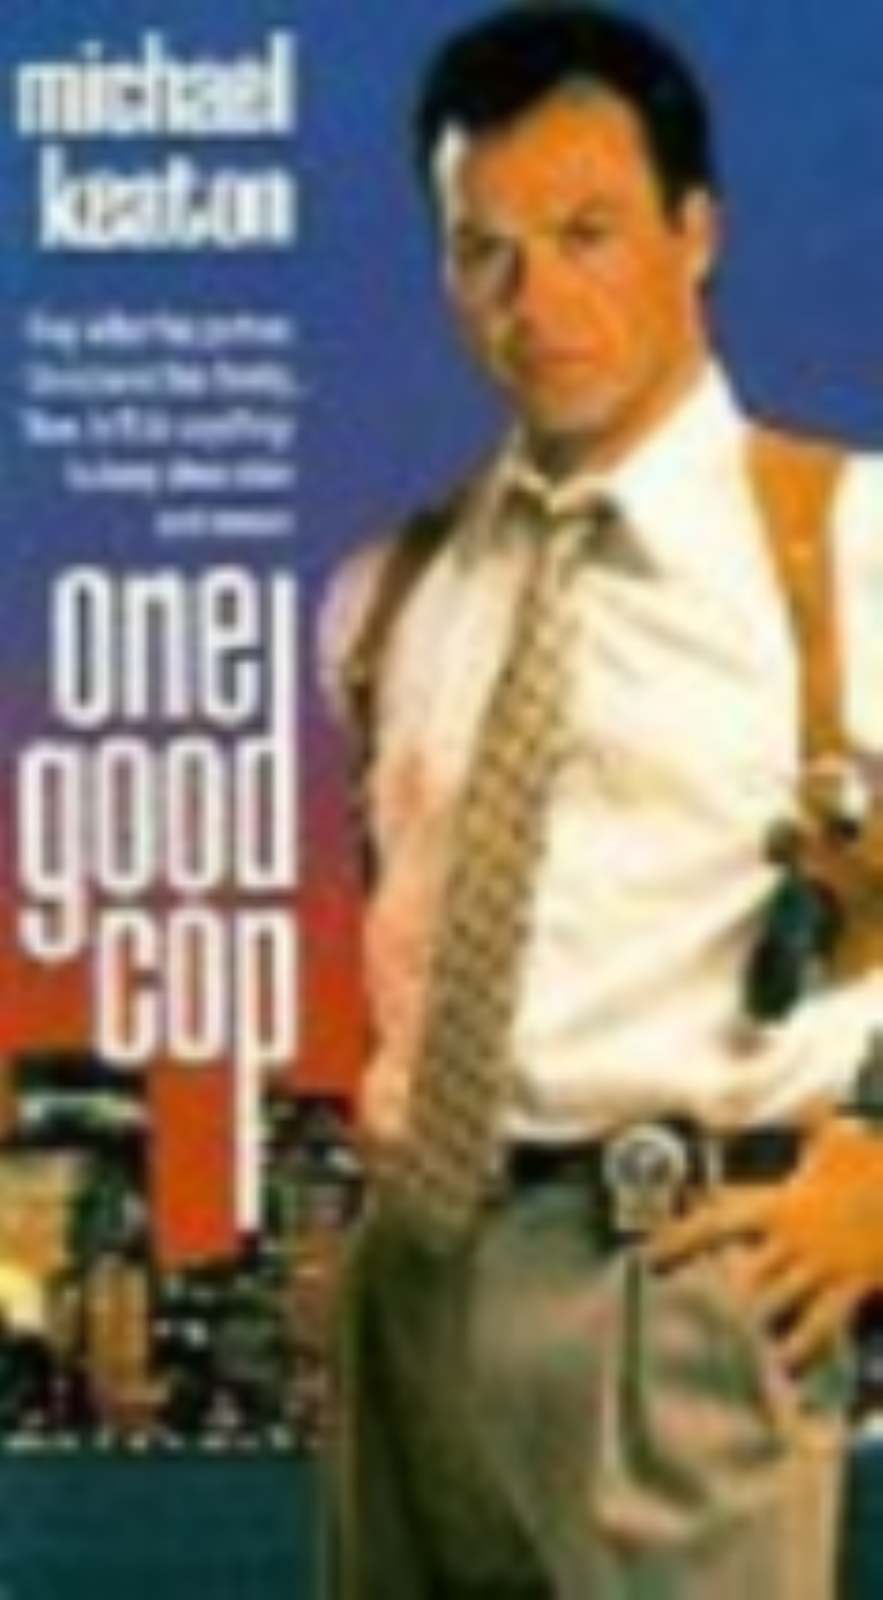 One Good Cop Vhs